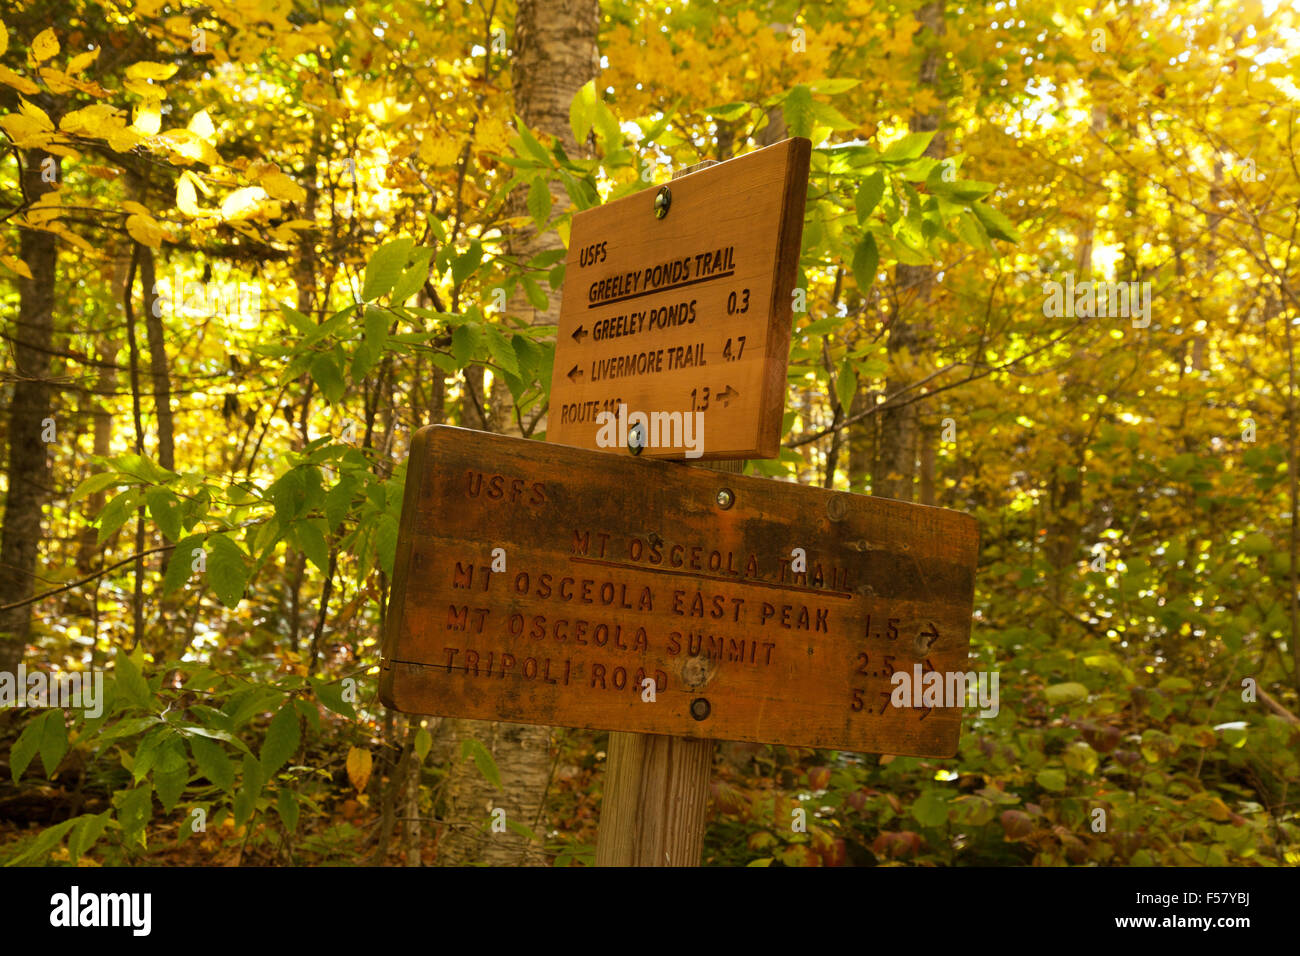 US walking trail sign, The White Mountain National Forest, New Hampshire USA - Stock Image